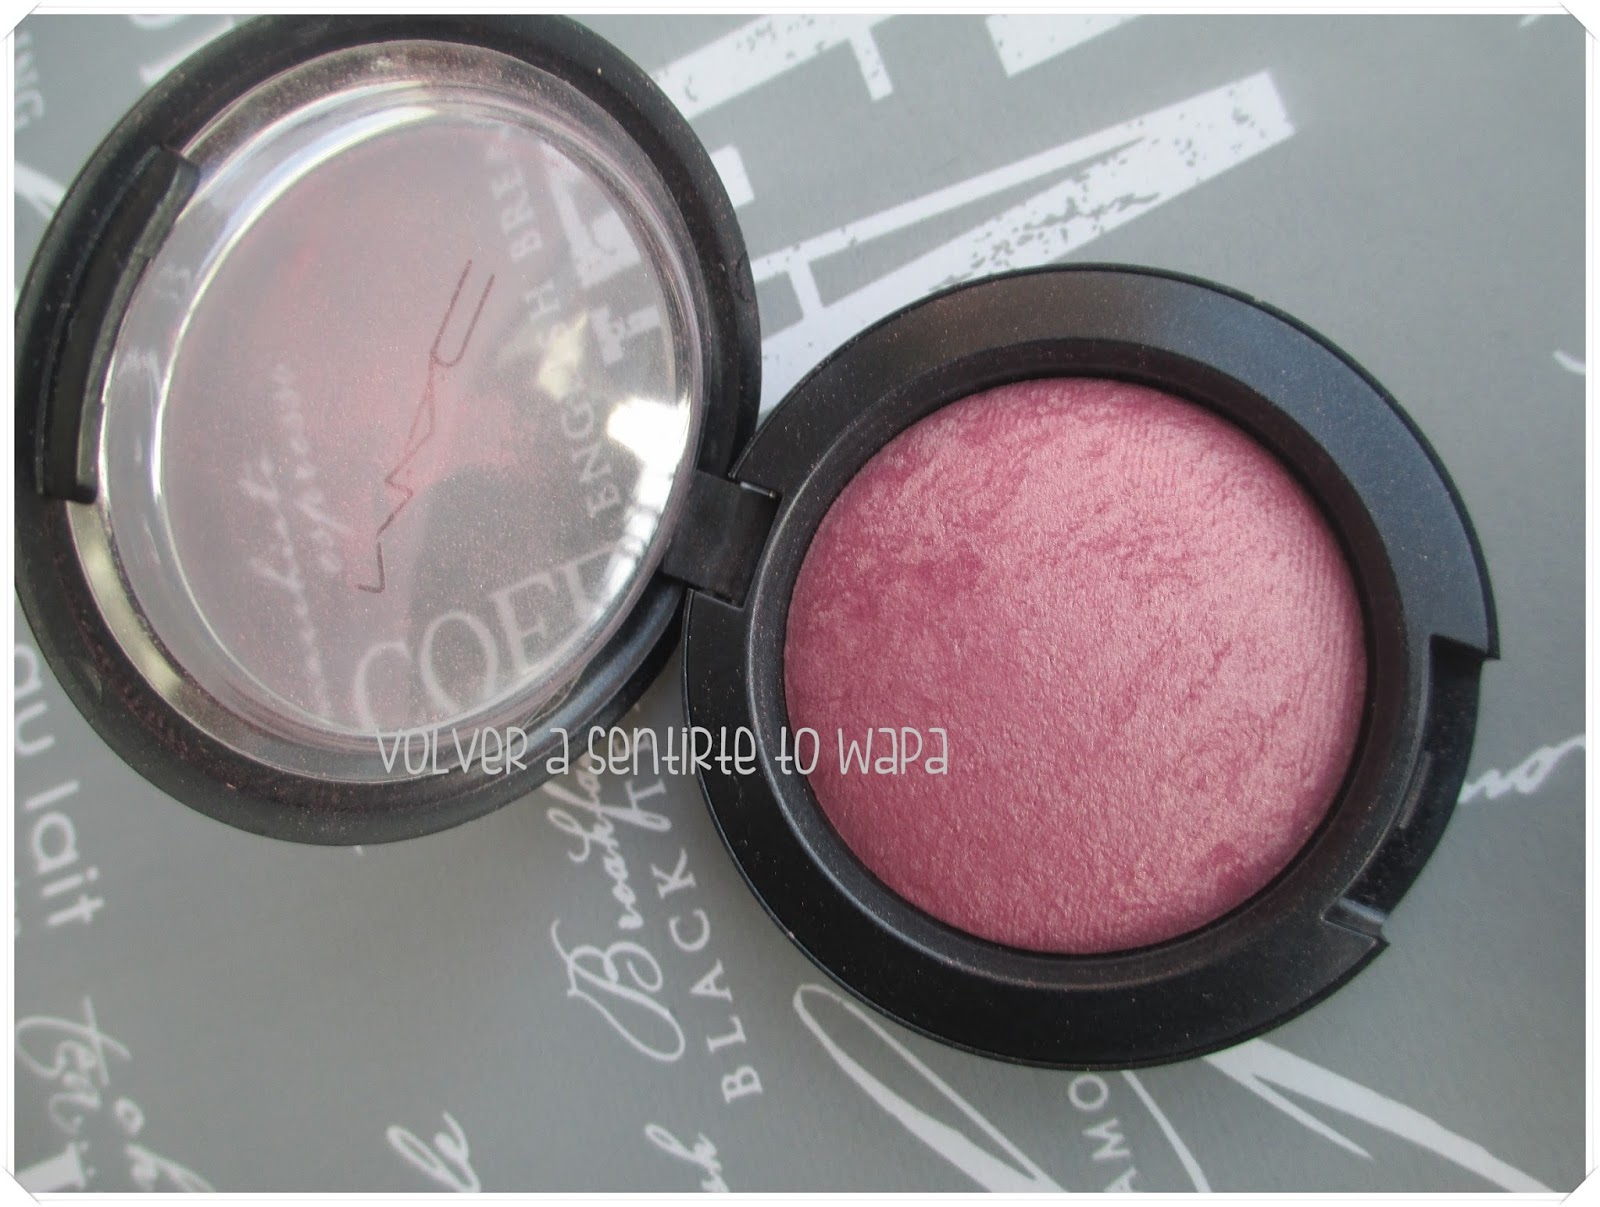 Colorete Gentle de MAC